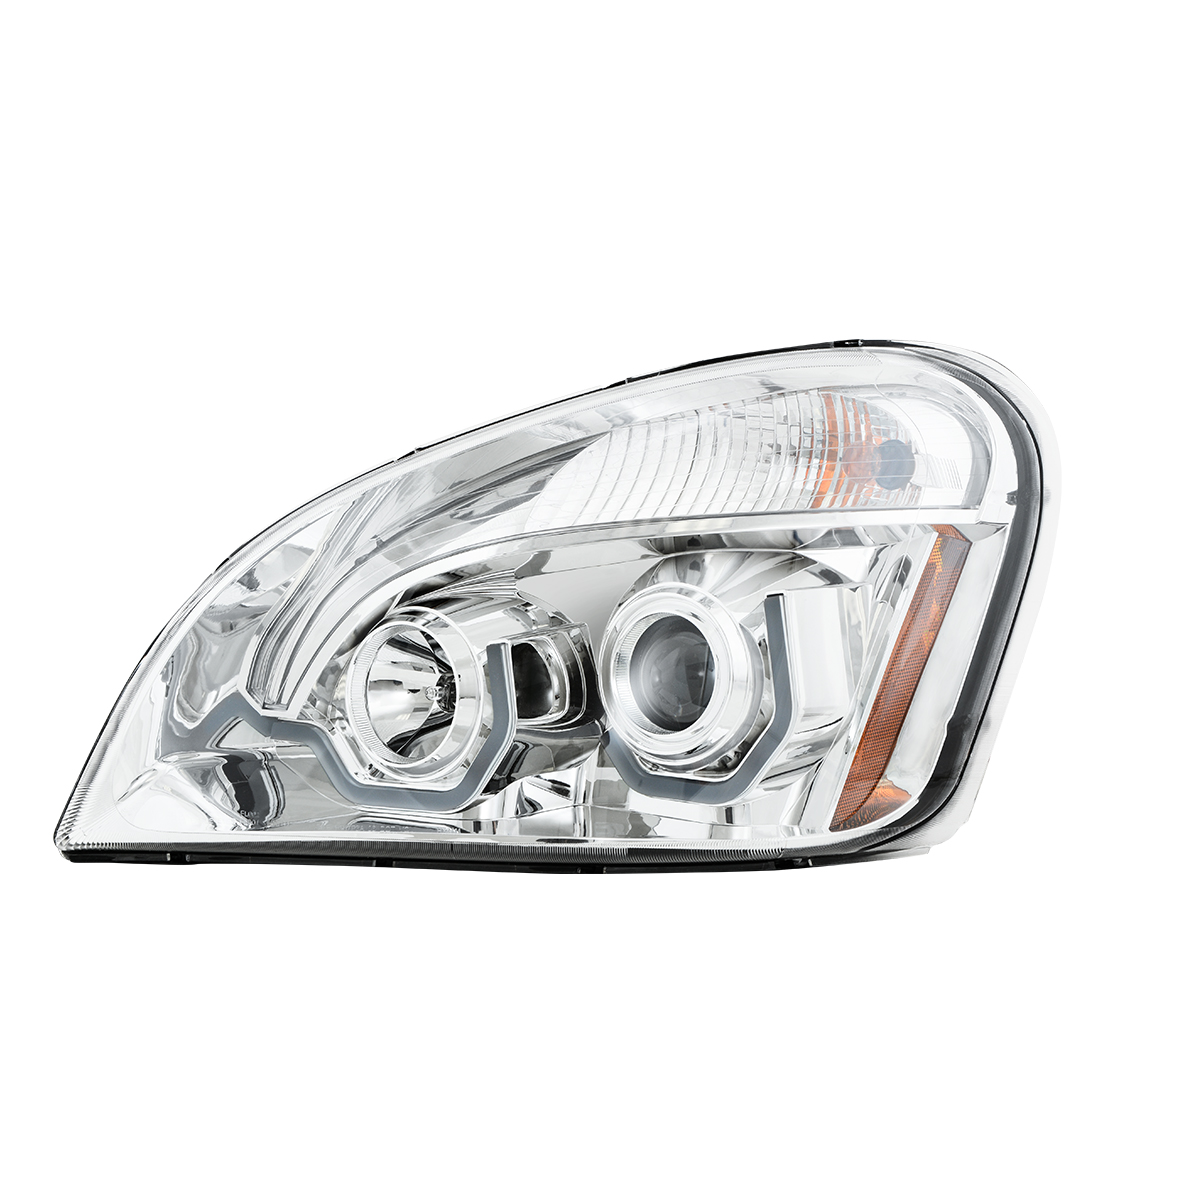 Freightliner Cascadia Chrome Projector Headlight w/ White LED Running Light